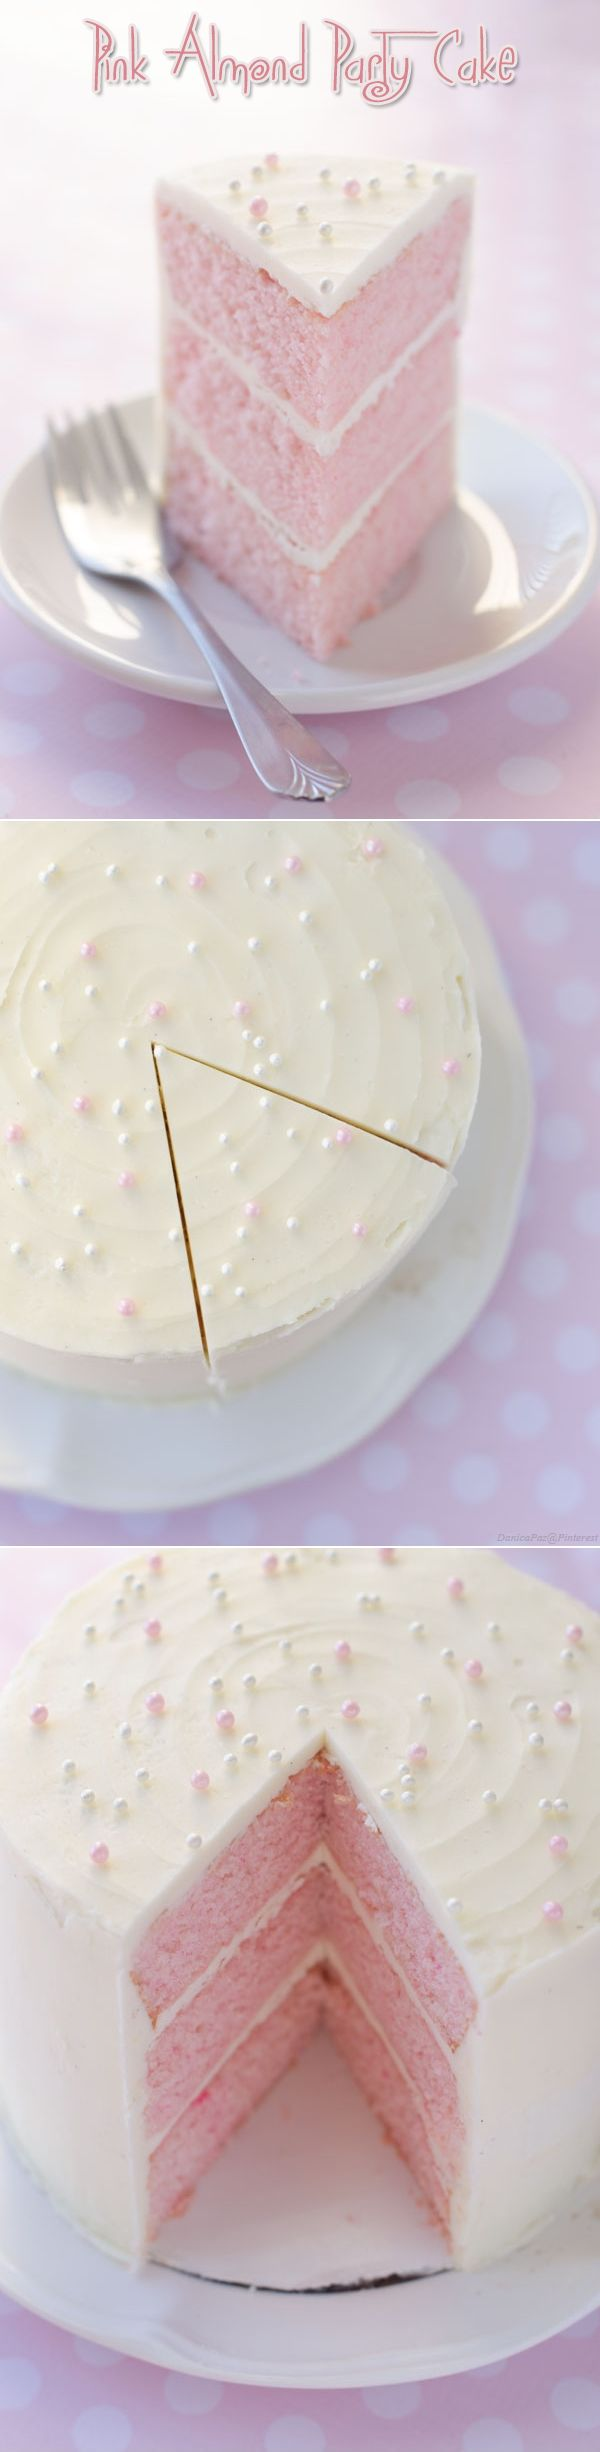 Pink Almond Party Cake: A light and fluffy cake topped with sugar pearls, which automatically makes it festive (and fancy!) This little cake is the perfect size for a small gathering...enough cake for everyone with a piece or two left over!